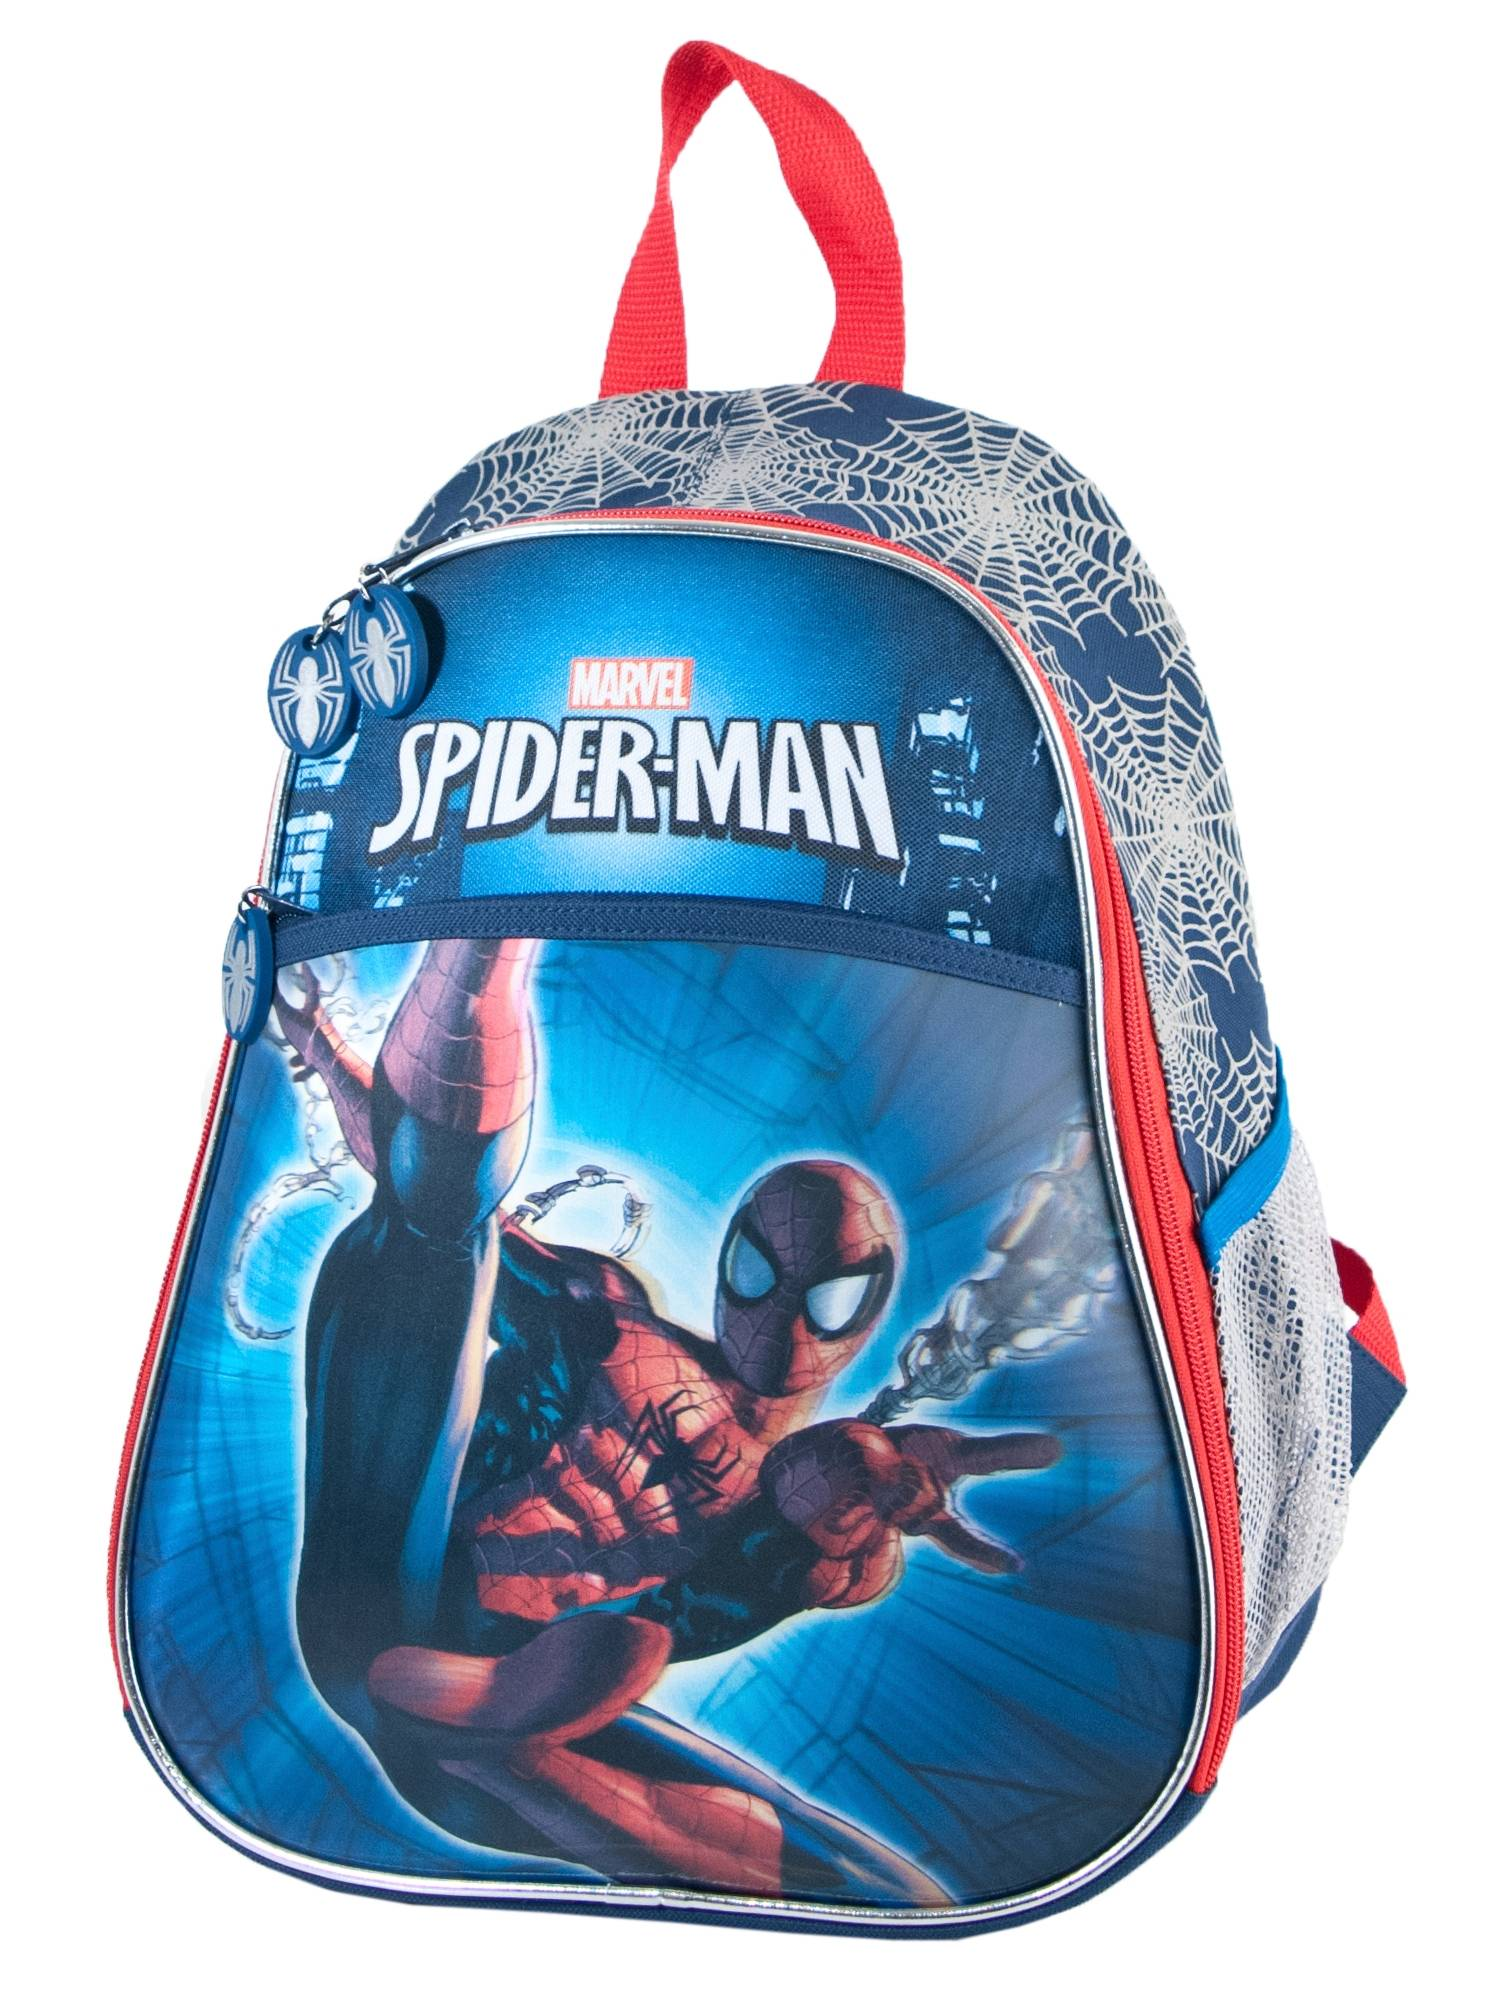 Rygsæk Spiderman - TEMP Accessories til Børn i Multi